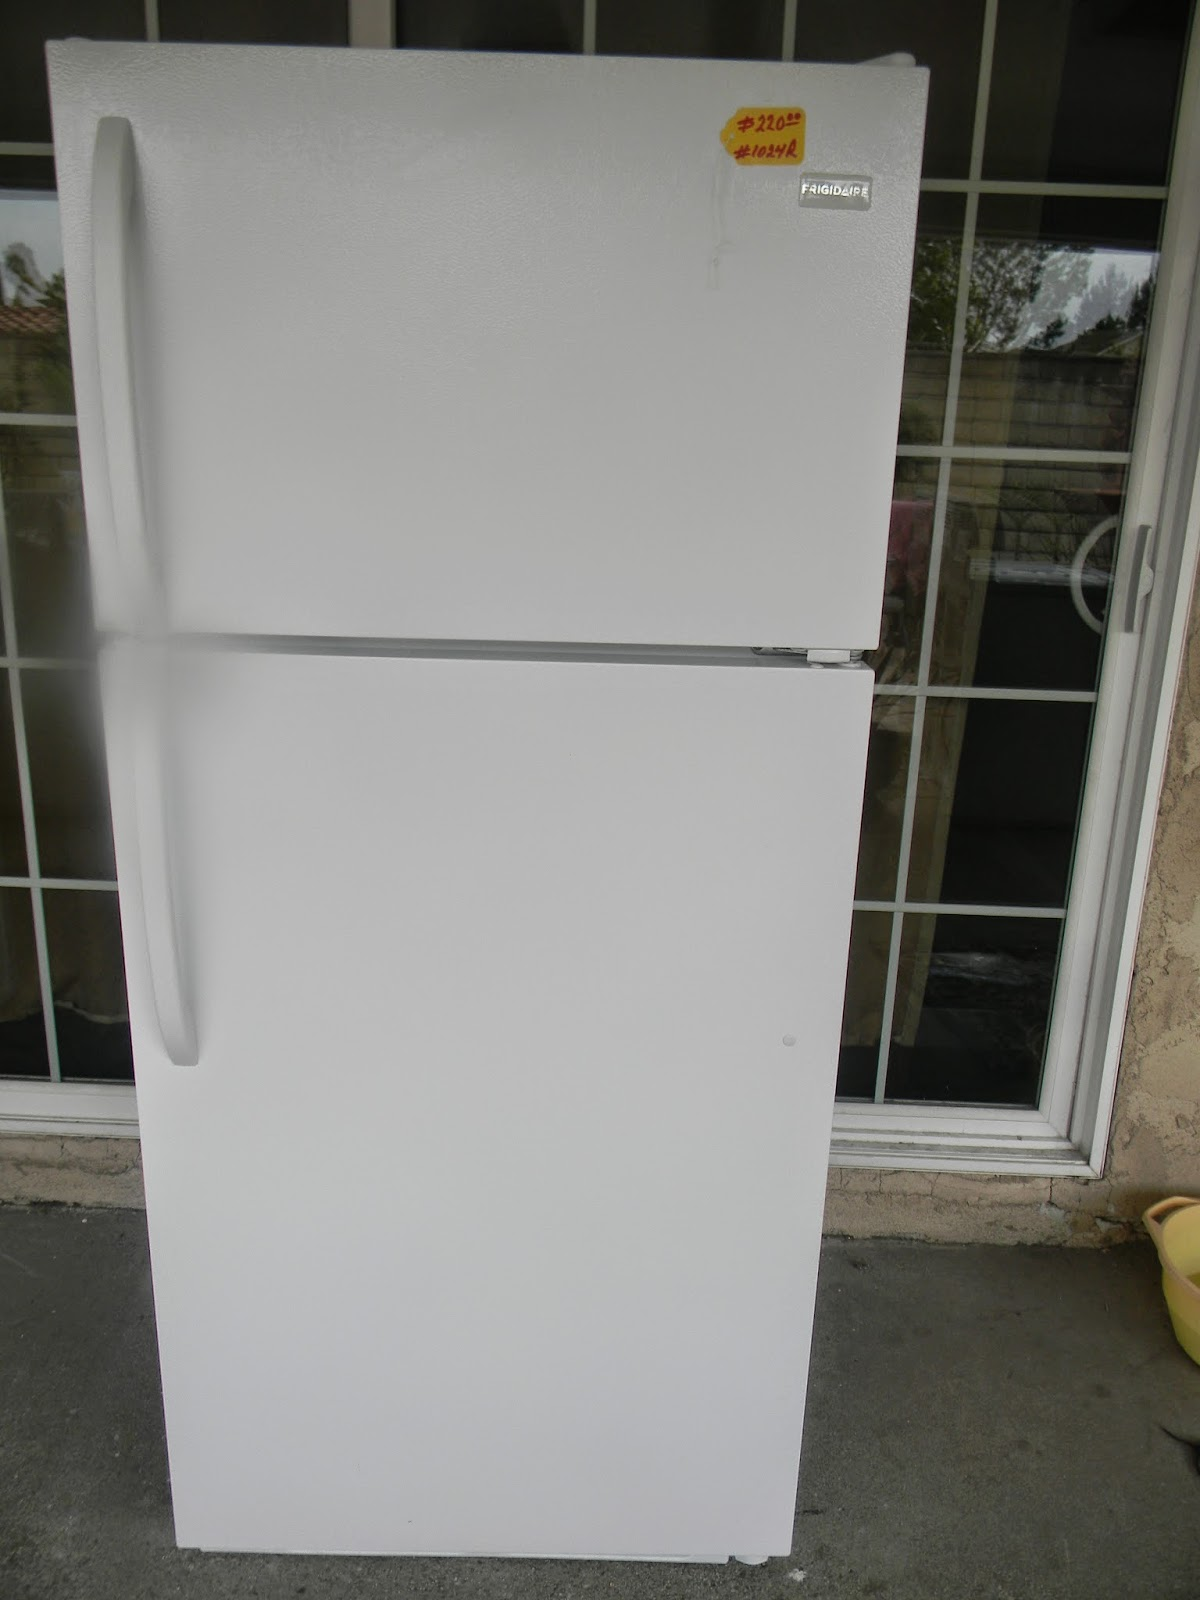 high quality appliance 1024r frigidaire top and bottom in good condition dimensions height 64 12 width 28 12